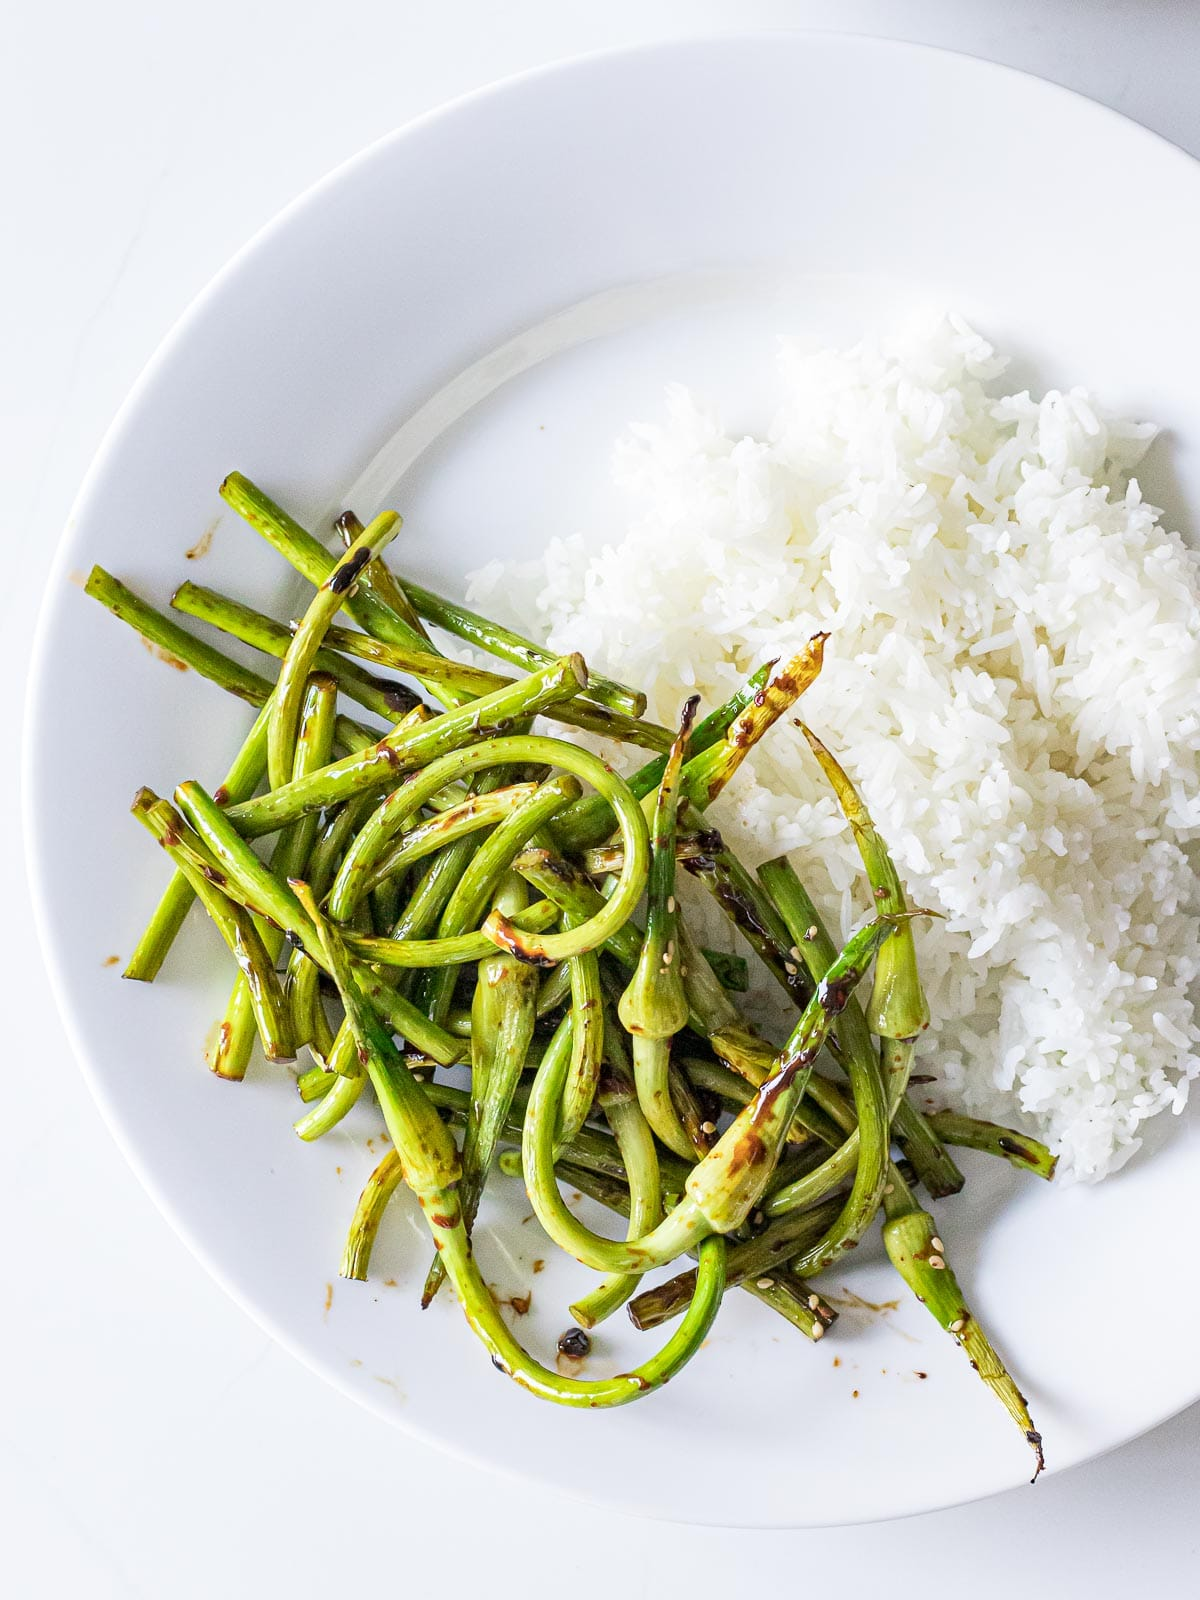 stir fried garlic scapes next to steamed rice on a white plate